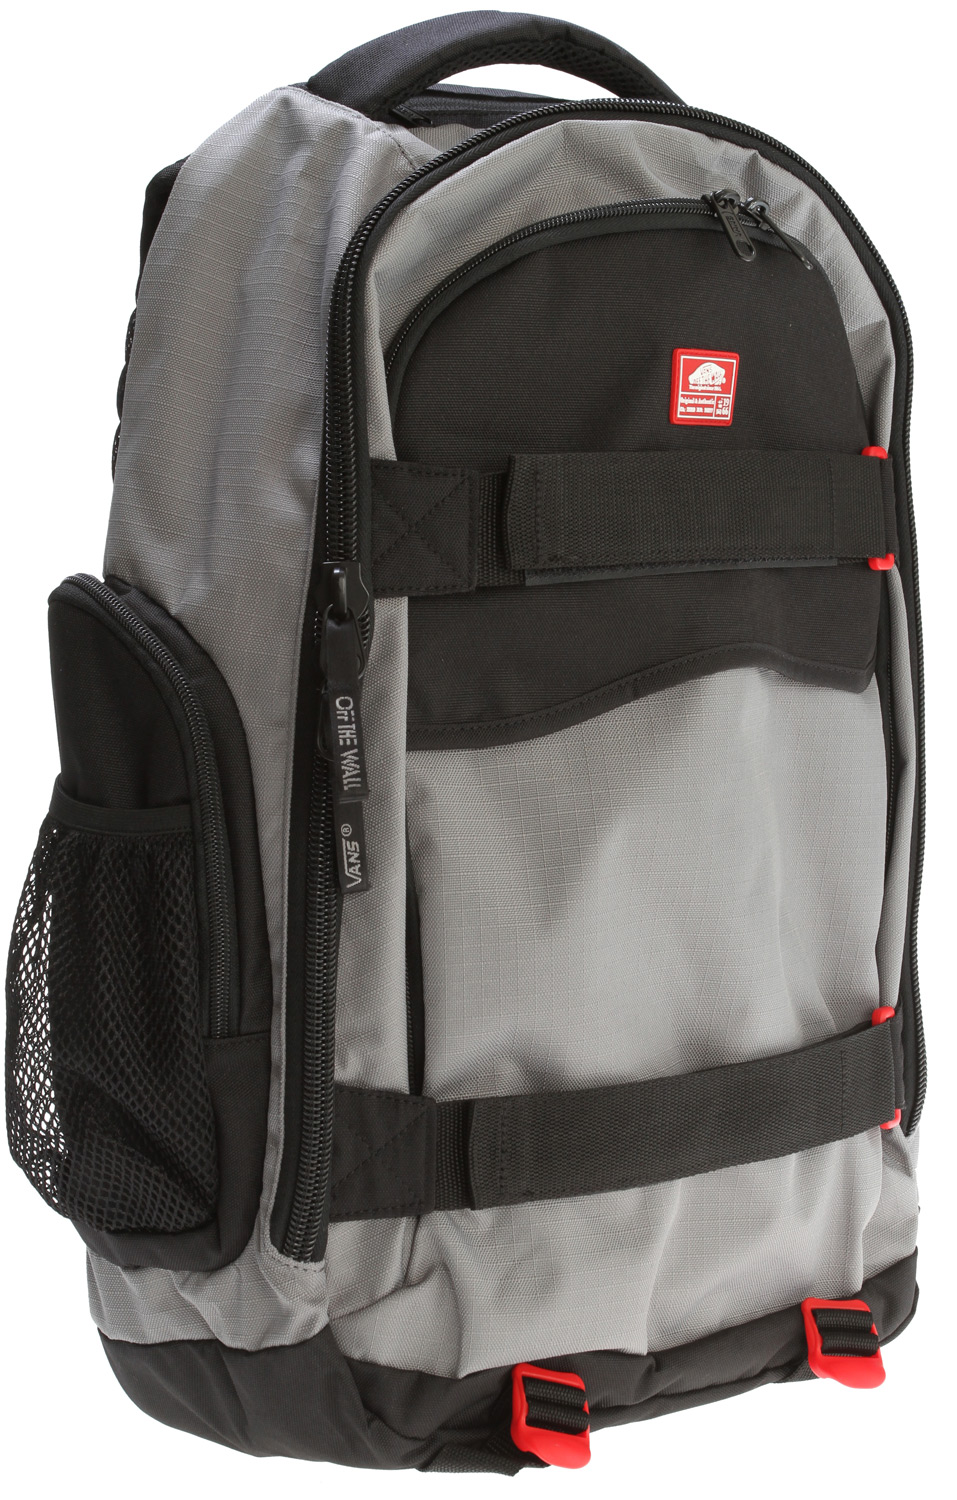 Skateboard Key Features of the Vans Transient Backpack: 600D Poly solid and ripstop, 2x PU-backed fabric - Skateboard straps - Hidden front zippered pocket - Padded air mesh handle - Compression straps at bottom - Fleece-lined media pocket with audio port under handle - Front zip pocket with interior organization - Side zip pockets - Side mesh pocket - Sternum strap - Large rubber heel tab on front - Logo zipper pulls - $34.95